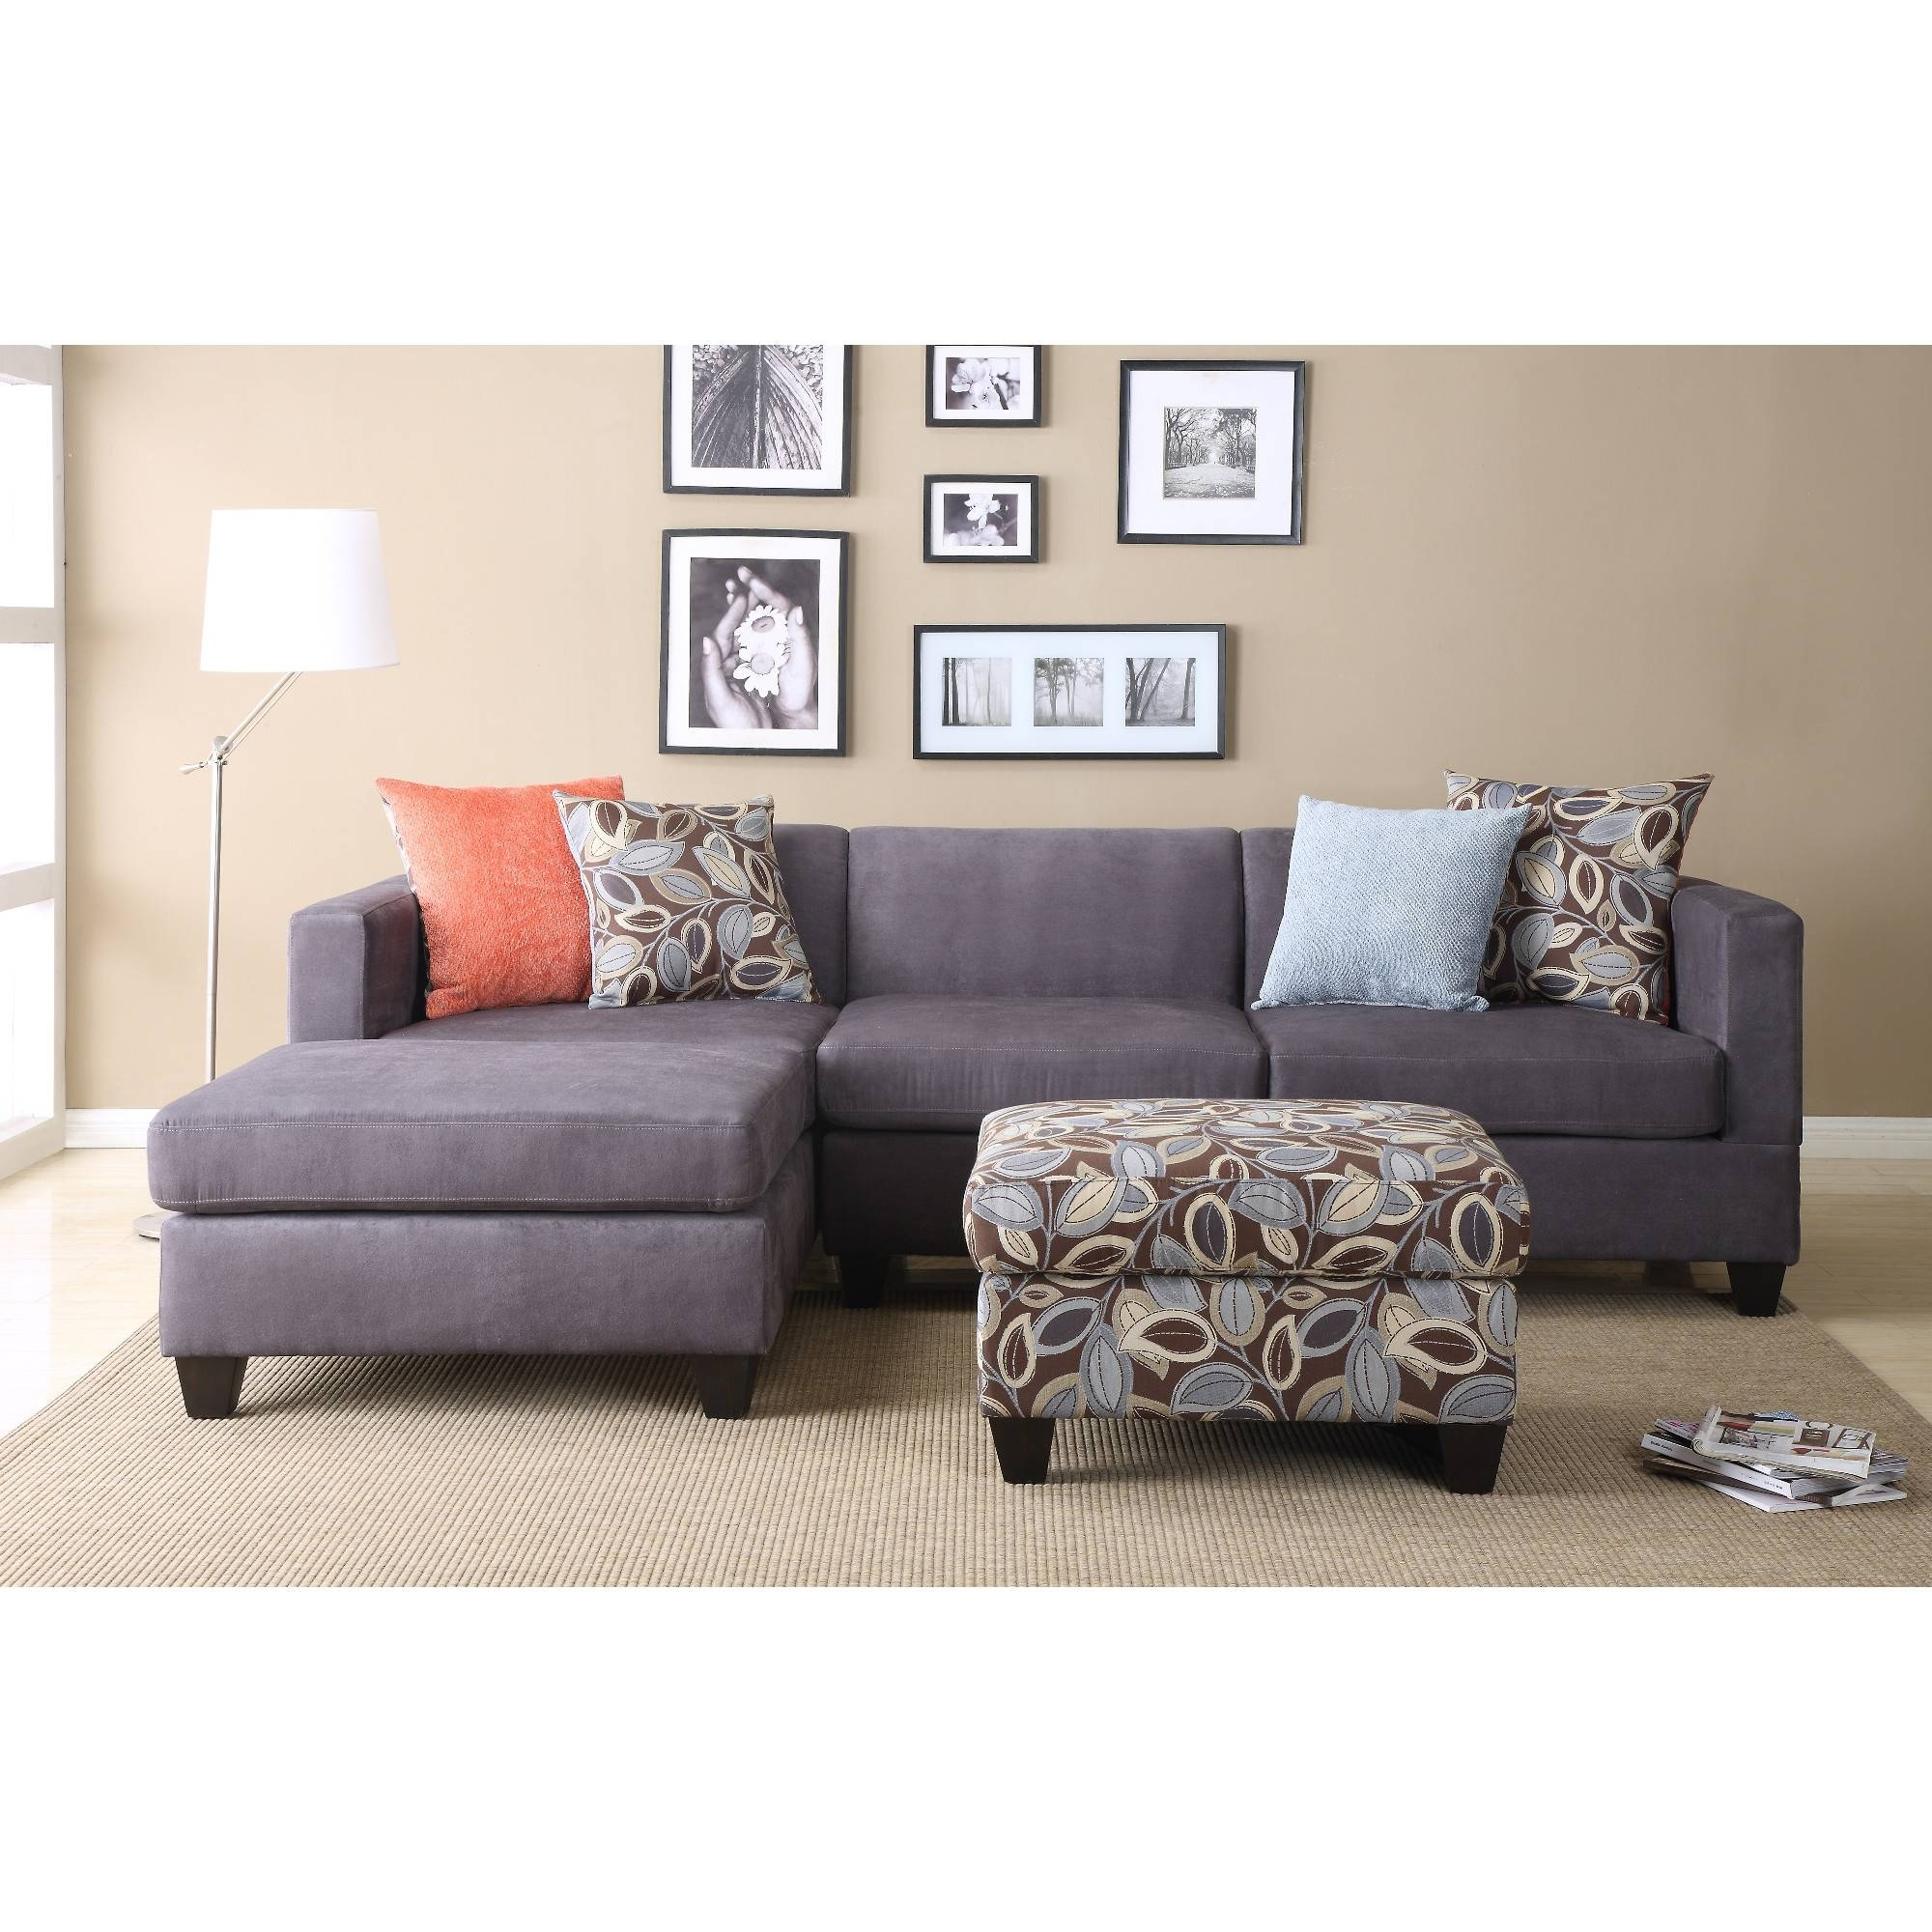 Furniture & Sofa: Perfect Small Spaces Configurable Sectional Sofa Regarding Colorful Sectional Sofas (View 5 of 30)